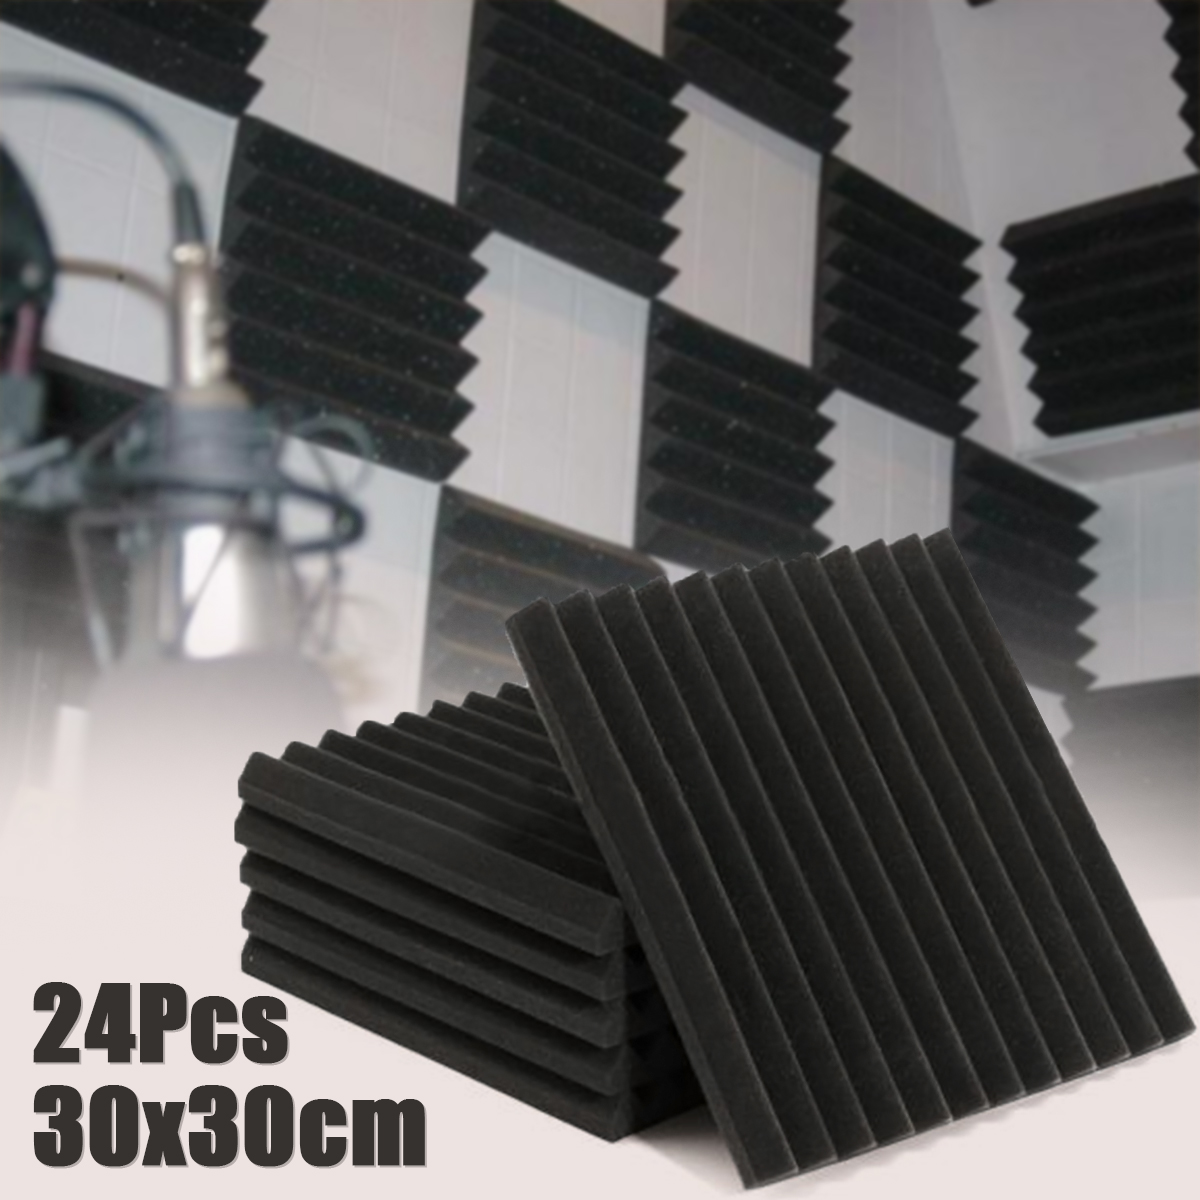 24 pcs 30x30 cm Insonorisation Mousse Acoustique Traitement Mousse D'insonorisation Studio D'absorption Cale Carreaux de Mousse de Polyuréthane